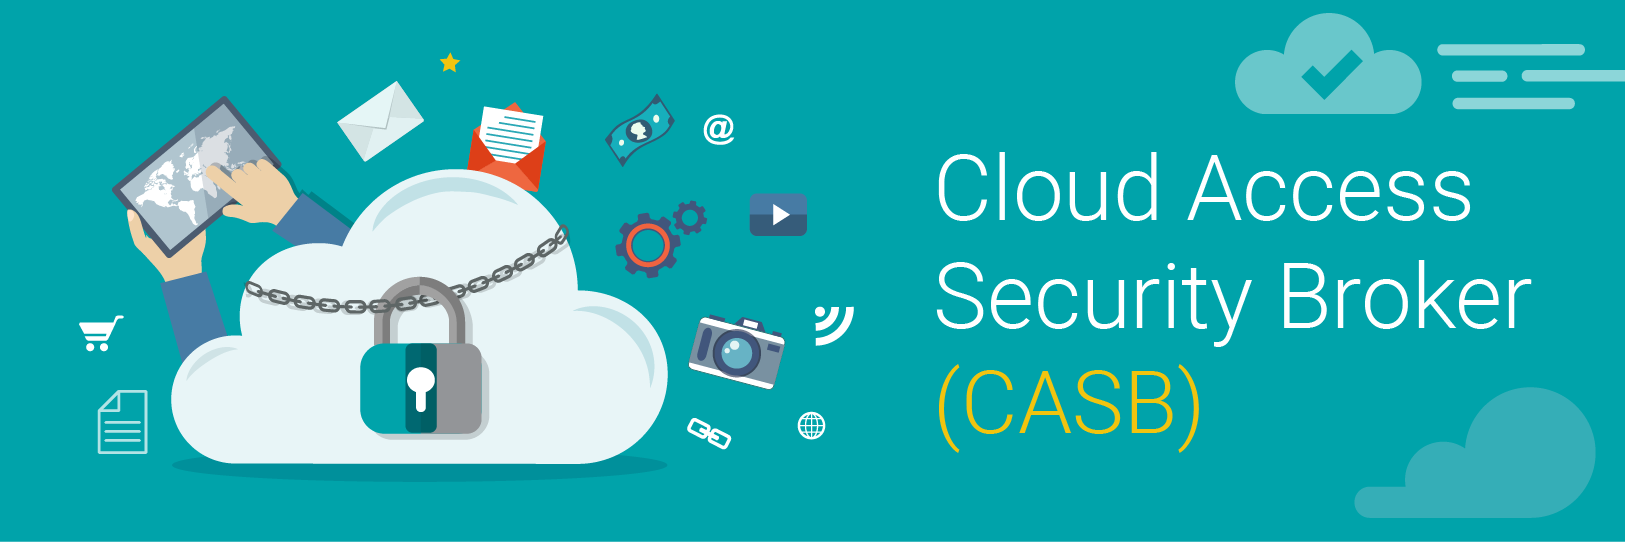 Safe-T Box Cloud Access Security Broker (CASB) Video